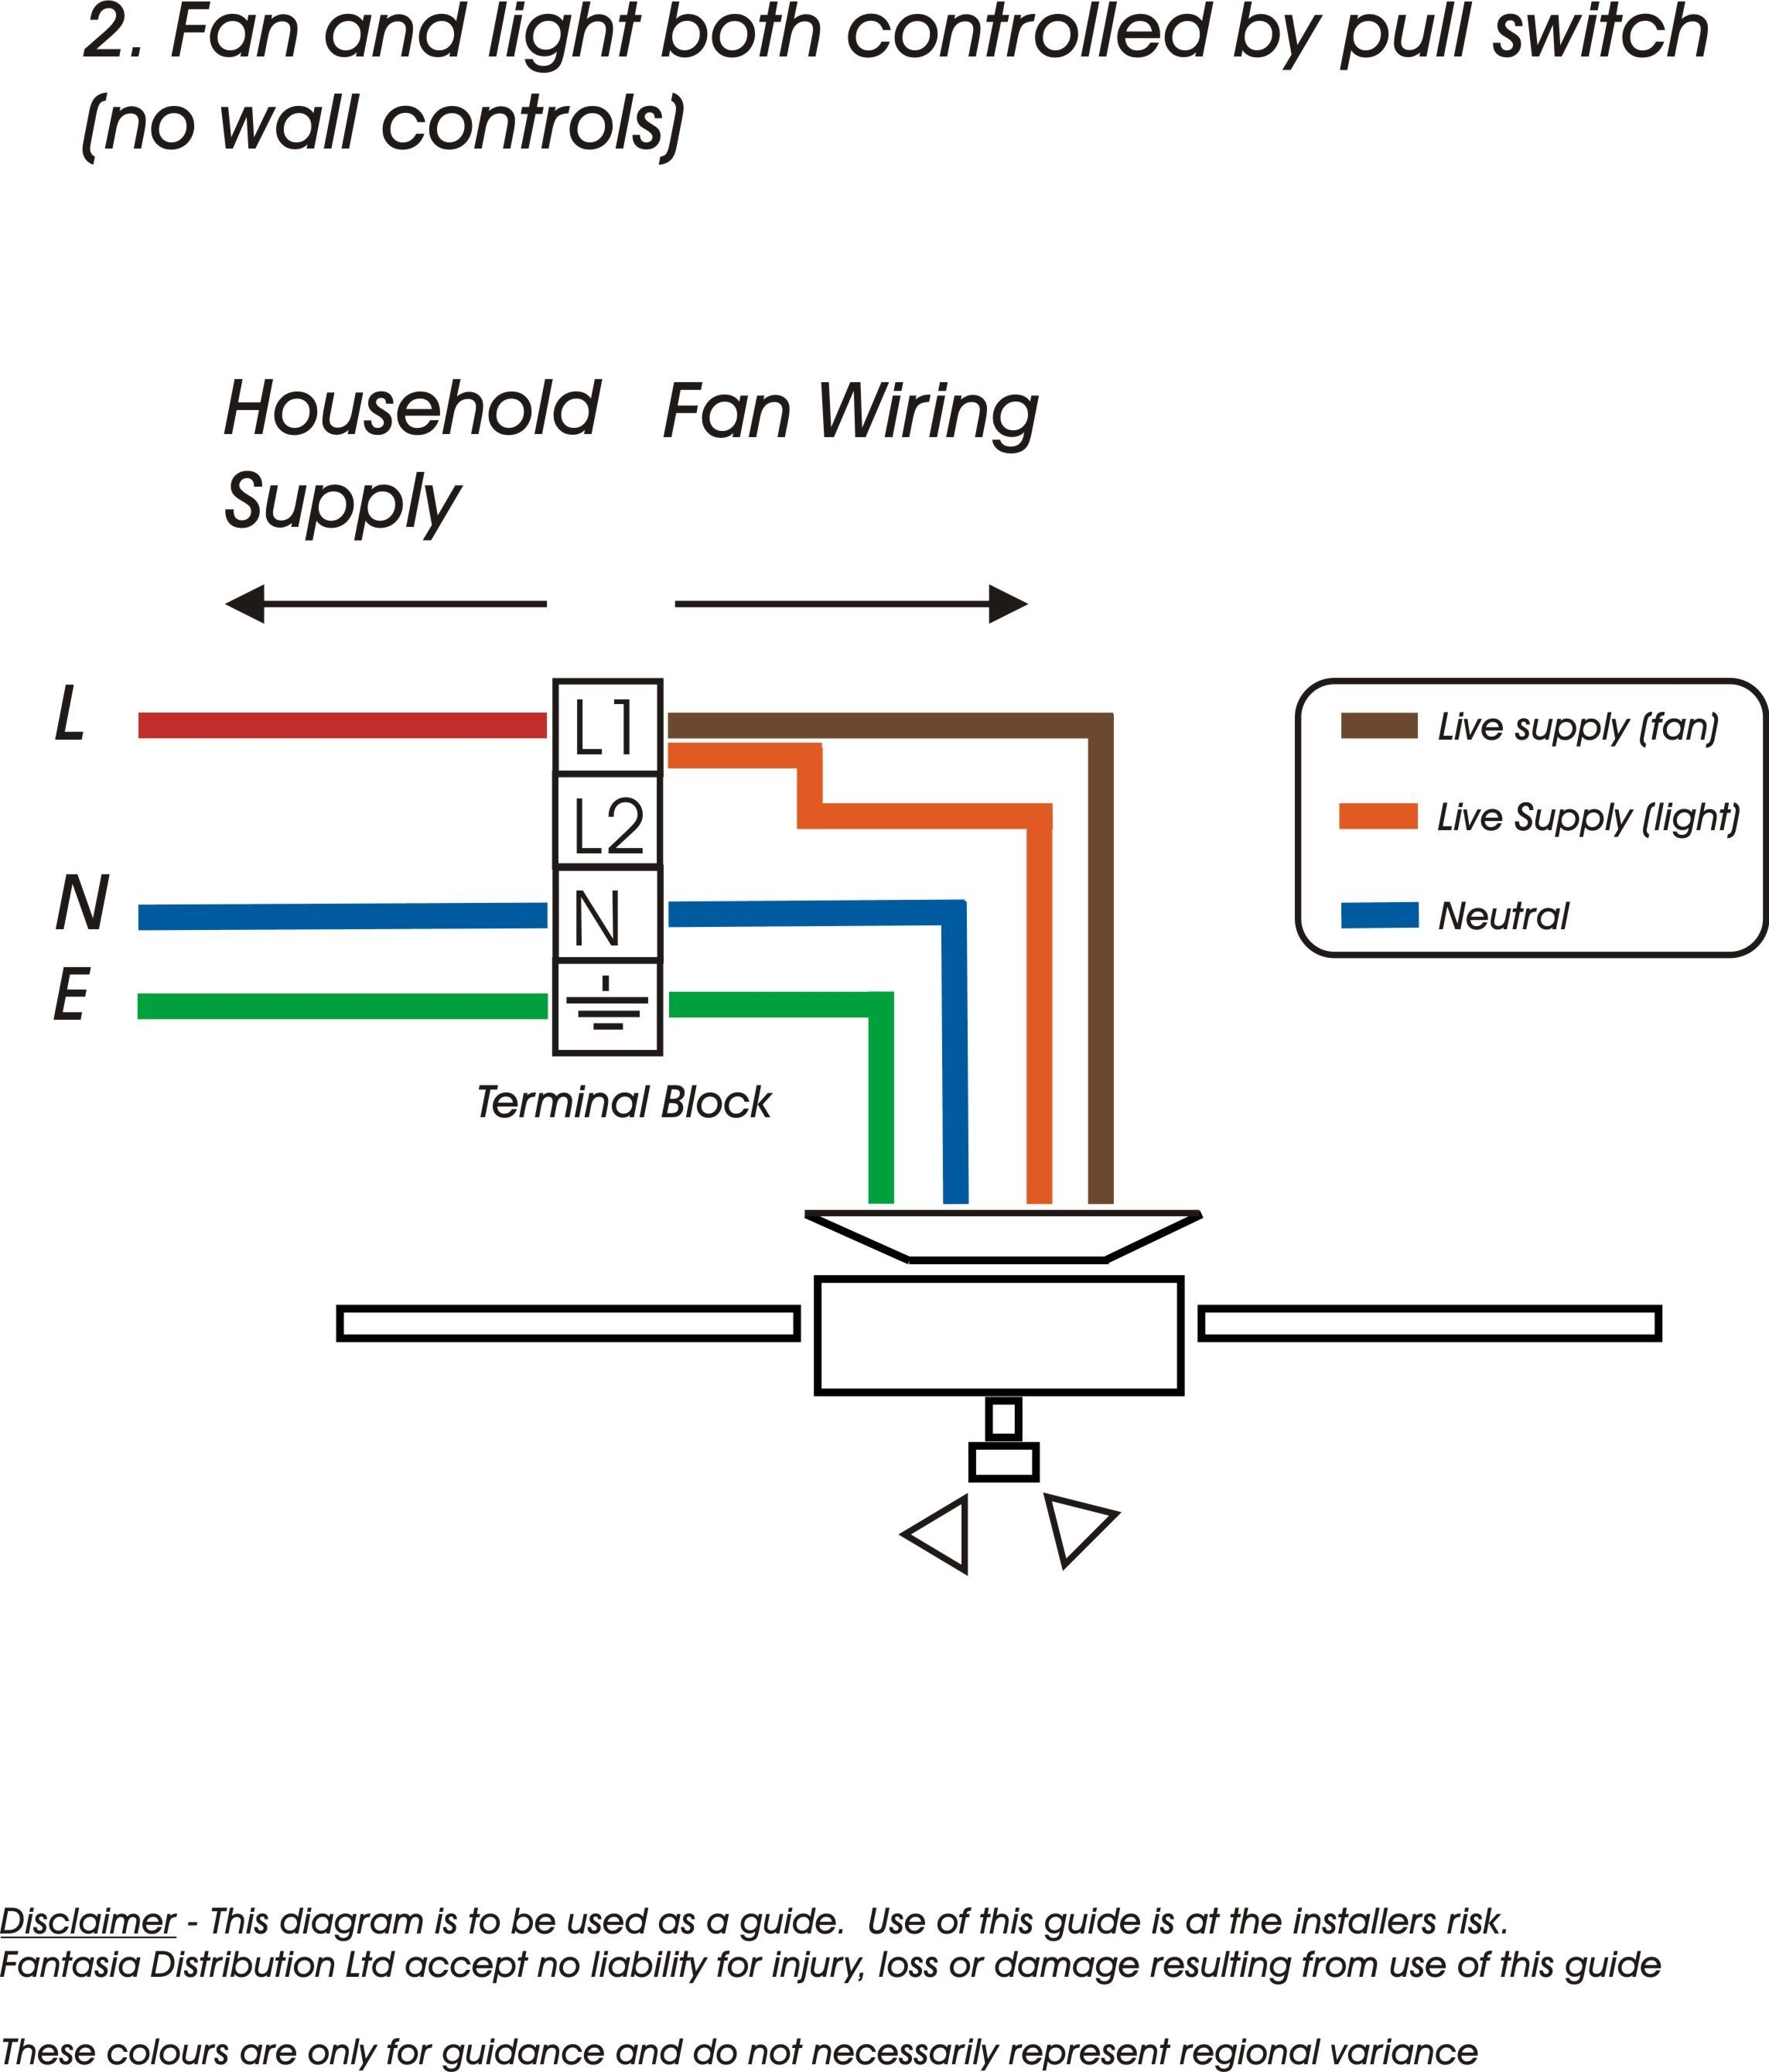 Ceiling fan light switch wiring httpladysrofo pinterest ceiling fan light switch wiring aloadofball Choice Image